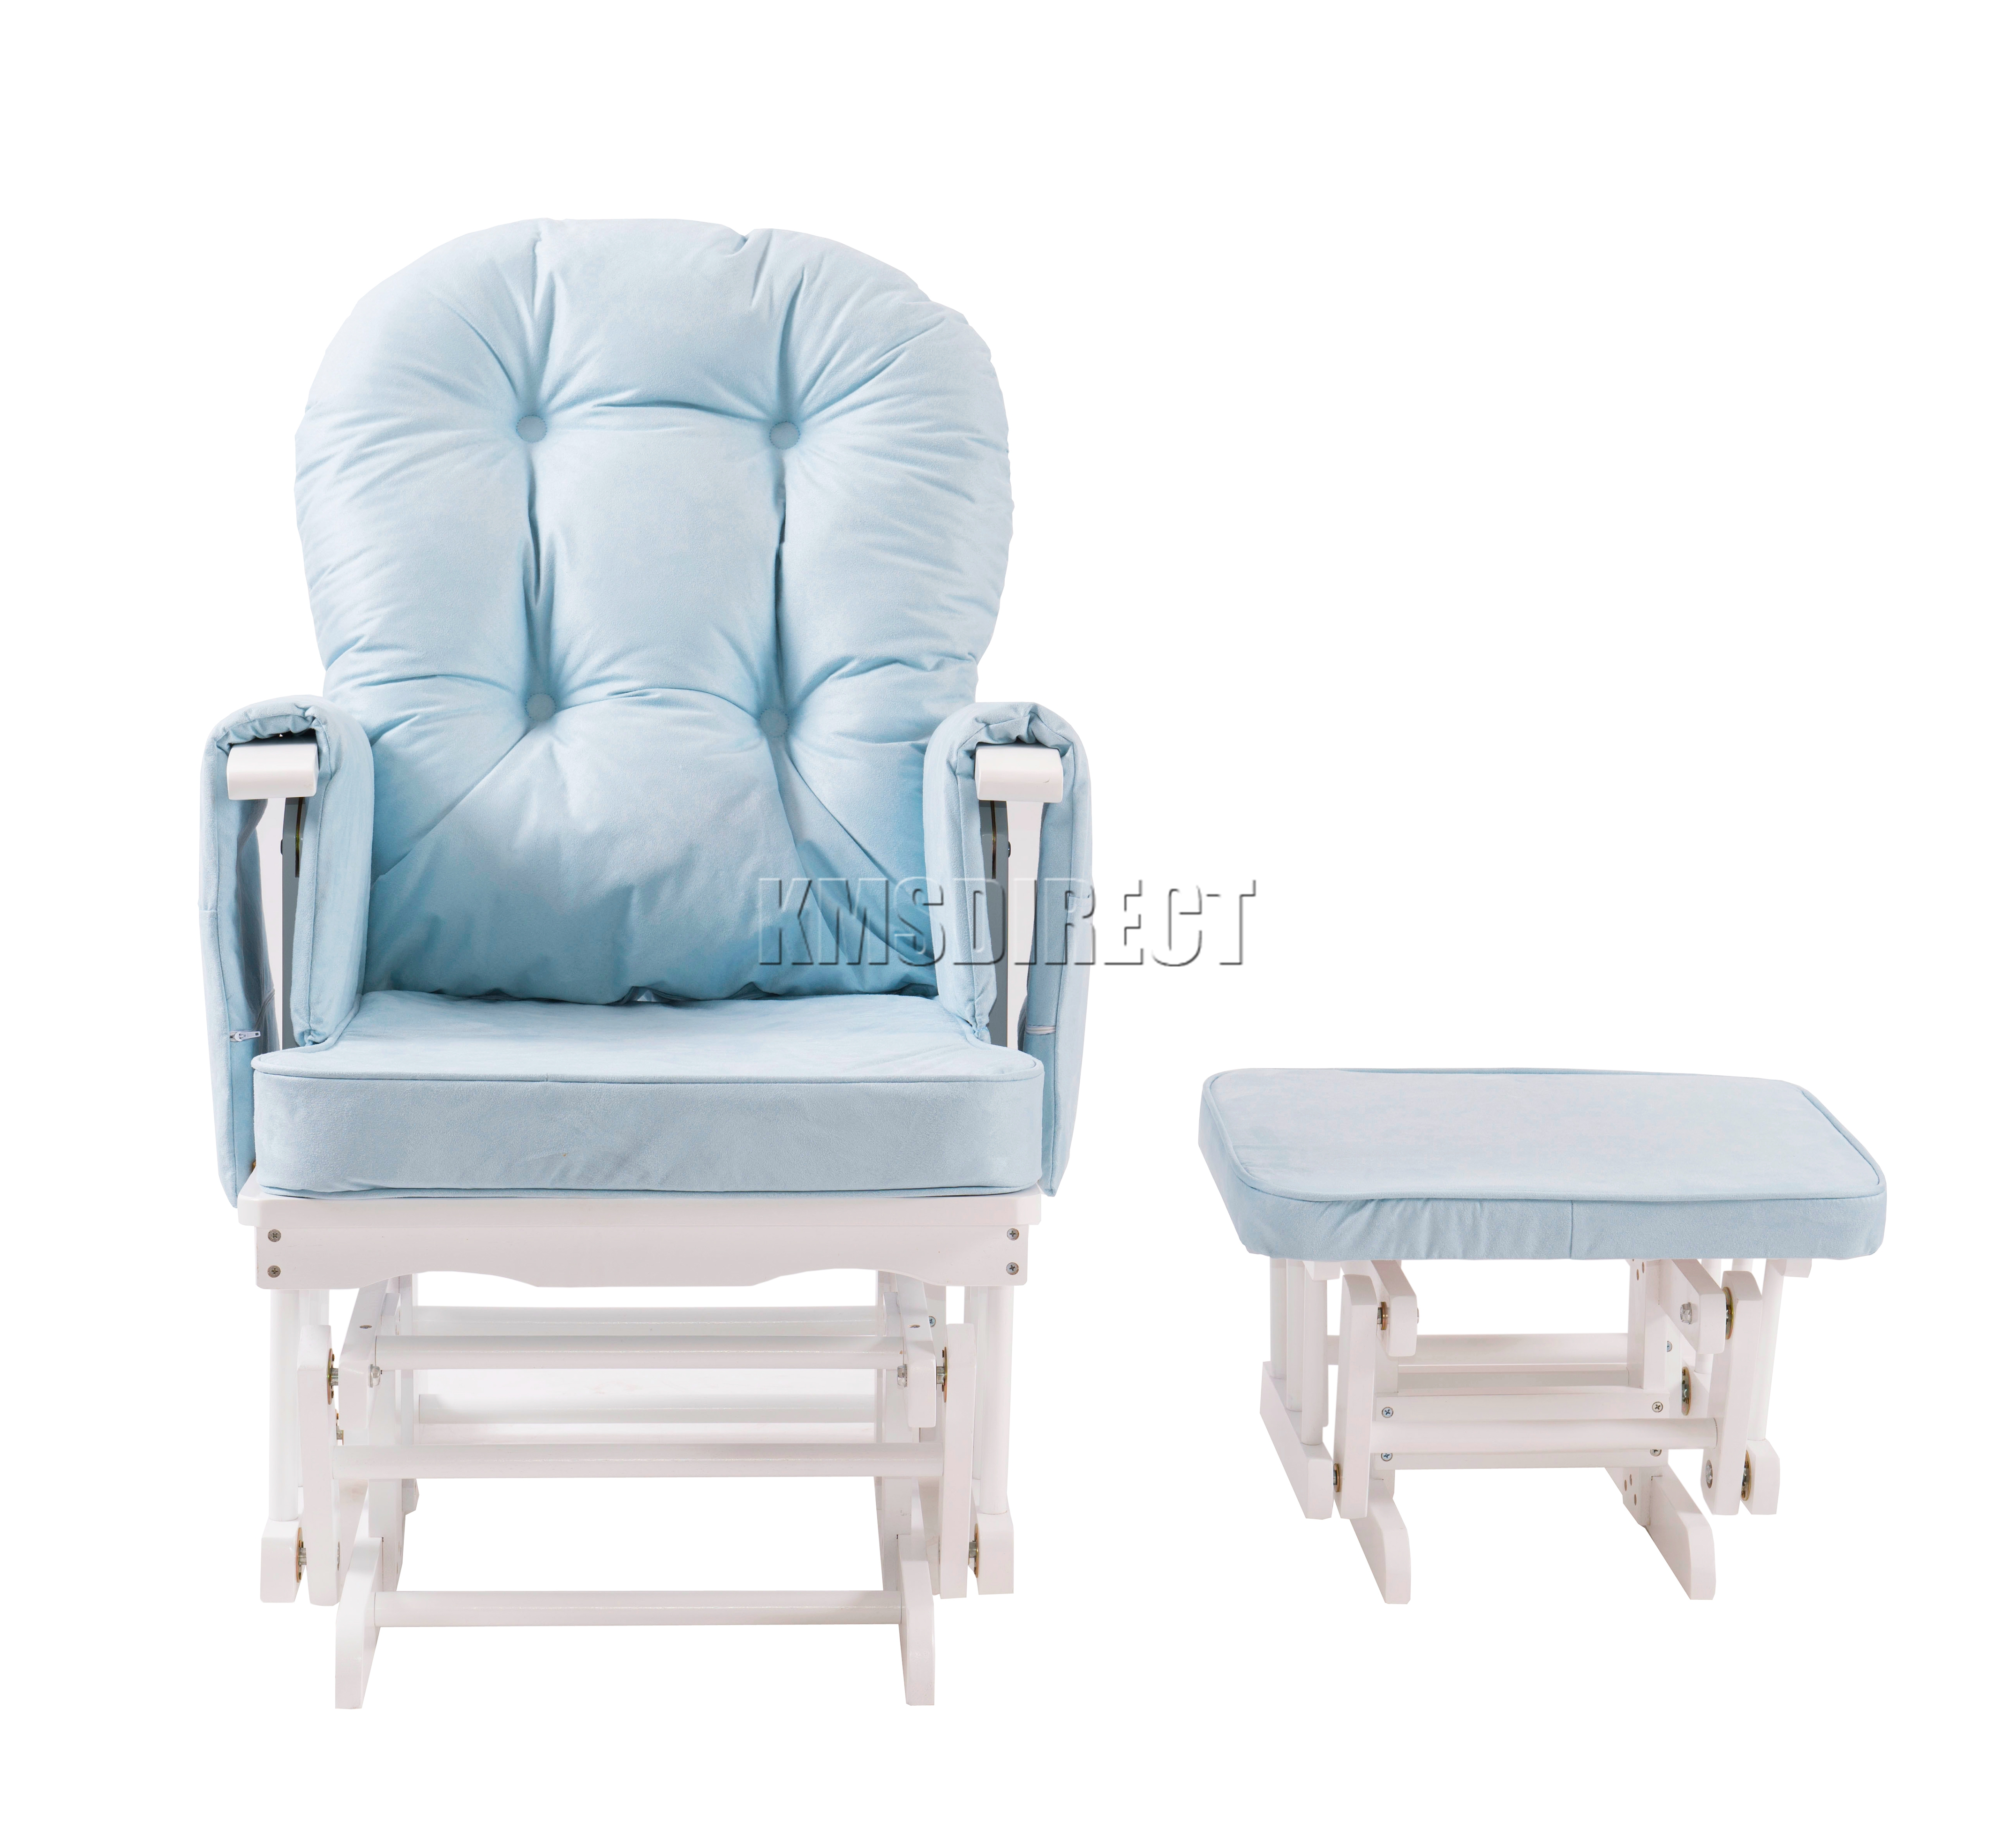 foxhunter nursing glider maternity rocking chair with stool white wood frame new ebay. Black Bedroom Furniture Sets. Home Design Ideas